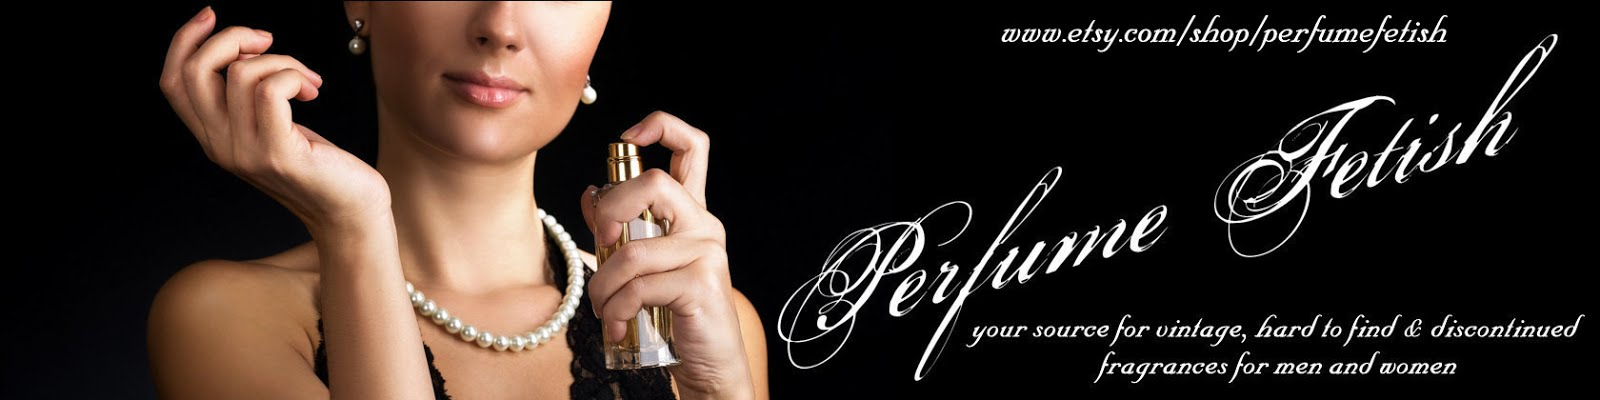 Your Source for Vintage Fragrances